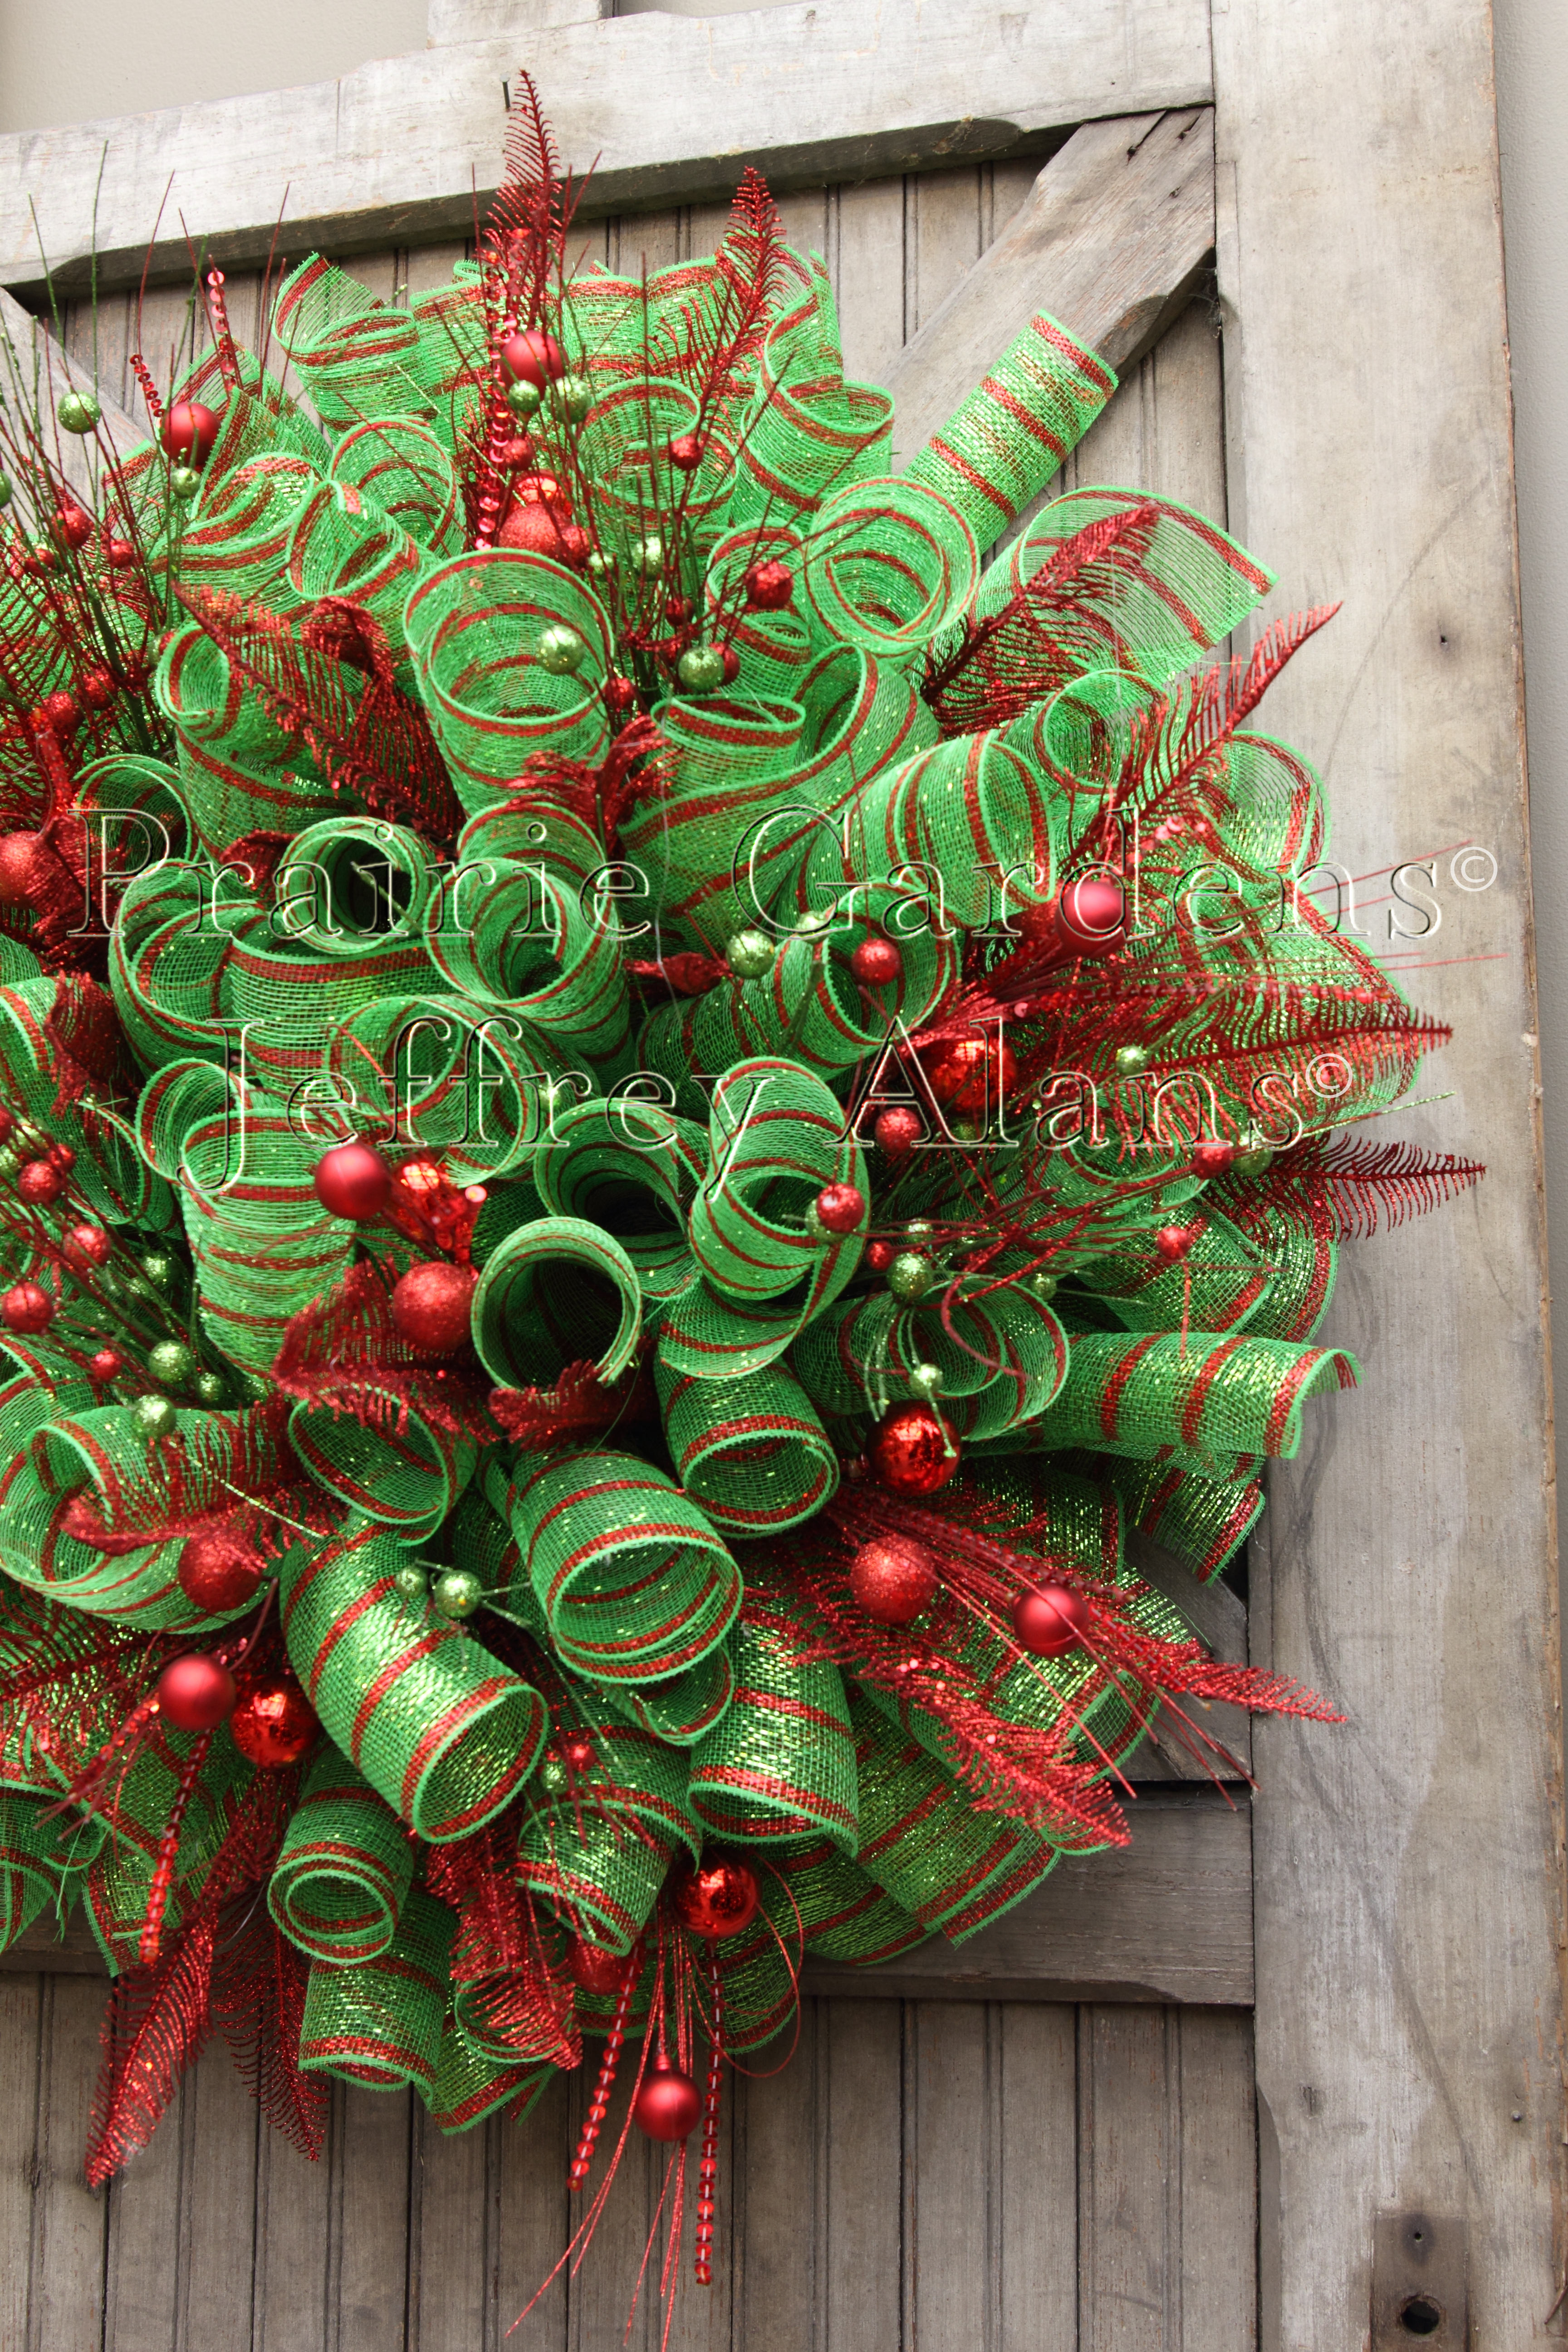 how to decorate a christmas tree with deco mesh finest walcottus - Decorating A Christmas Wreath With Mesh Ribbon